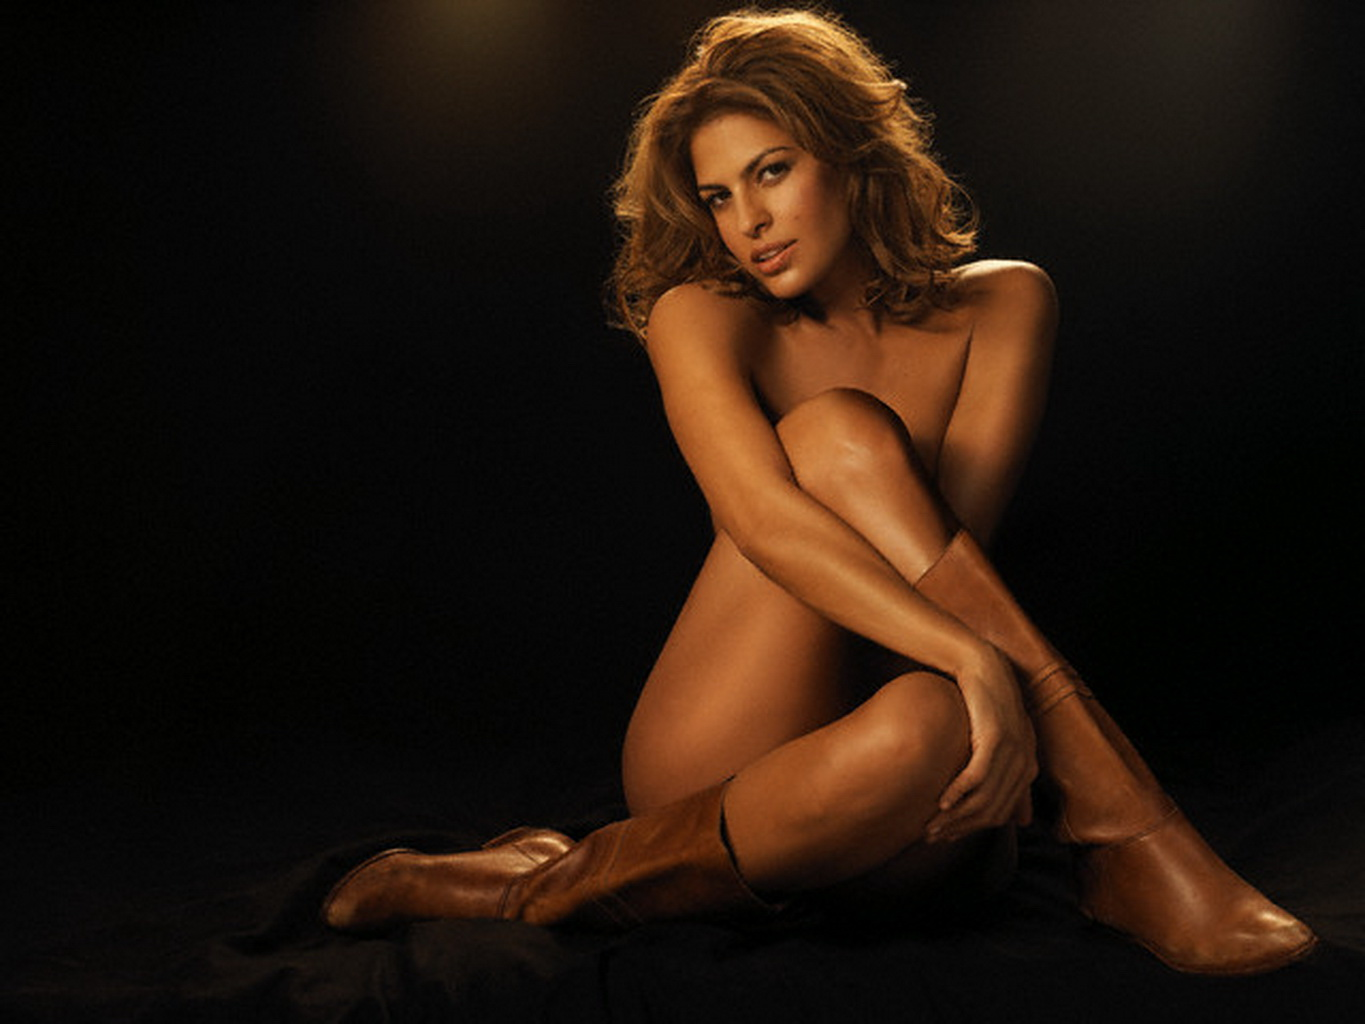 And Eva mendez nude movie